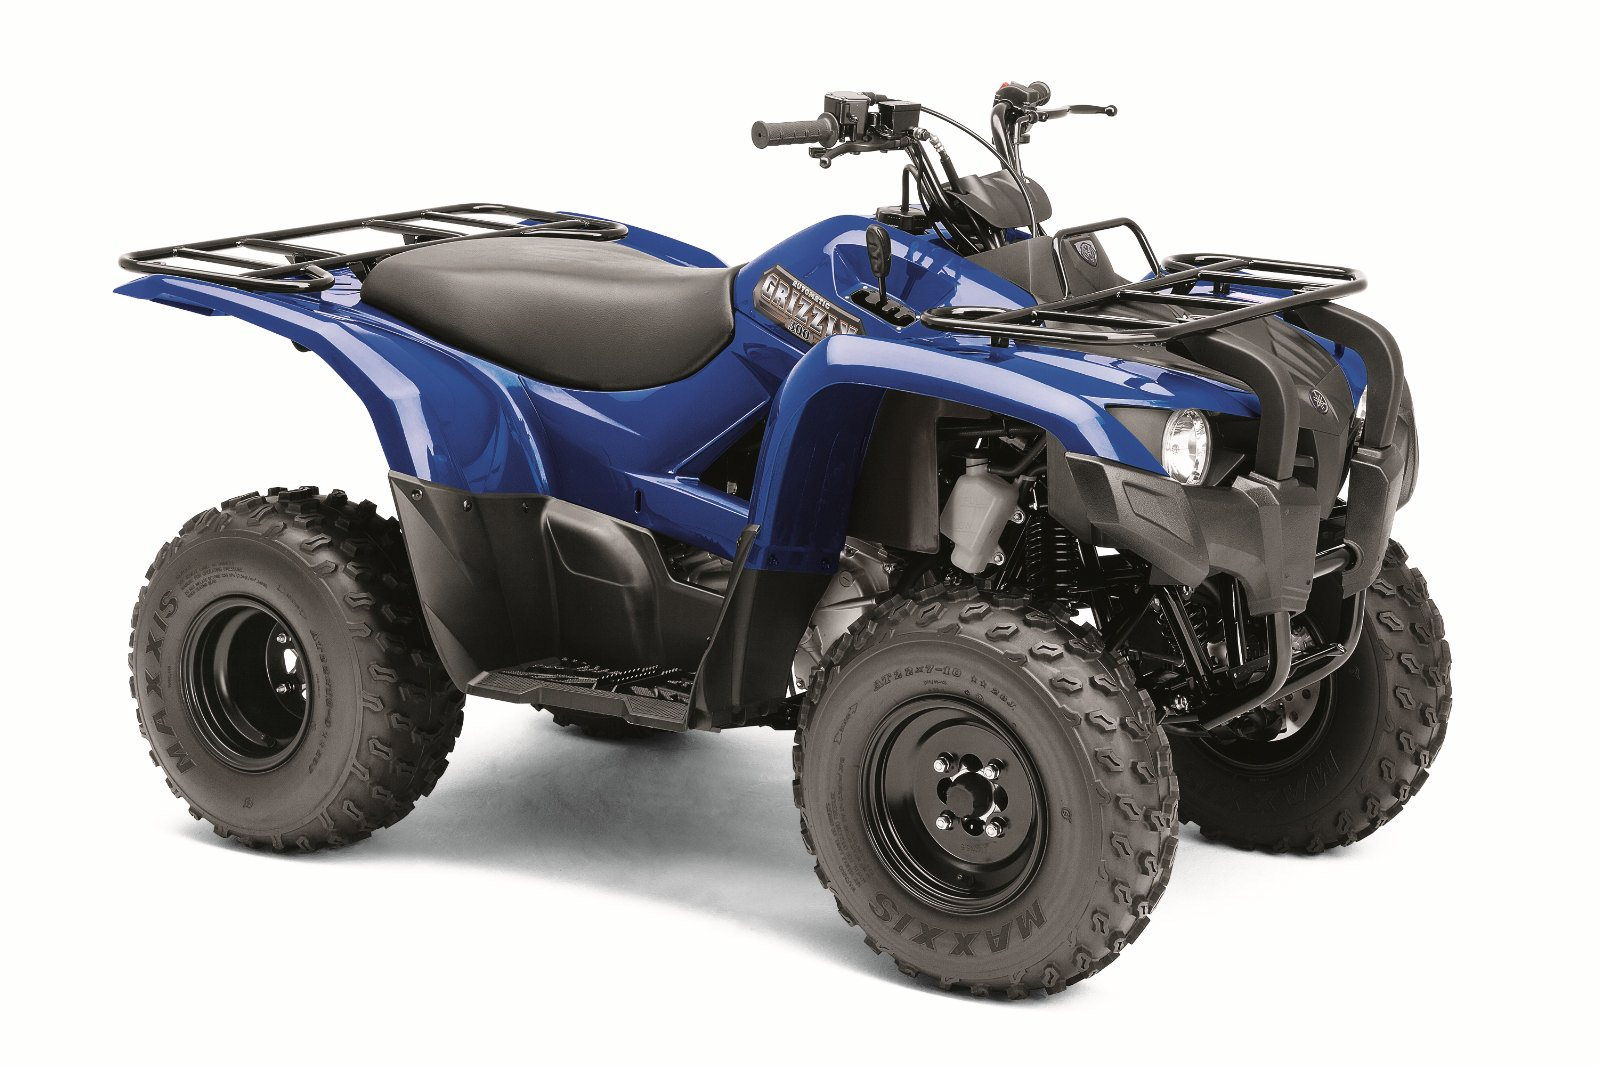 Grizzly 300 Wiring Diagram Electrical Diagrams 2000 Yamaha 600 Fan 2012 Auto Today U2022 Arctic Cat 500 4x4 Atv Schematic For